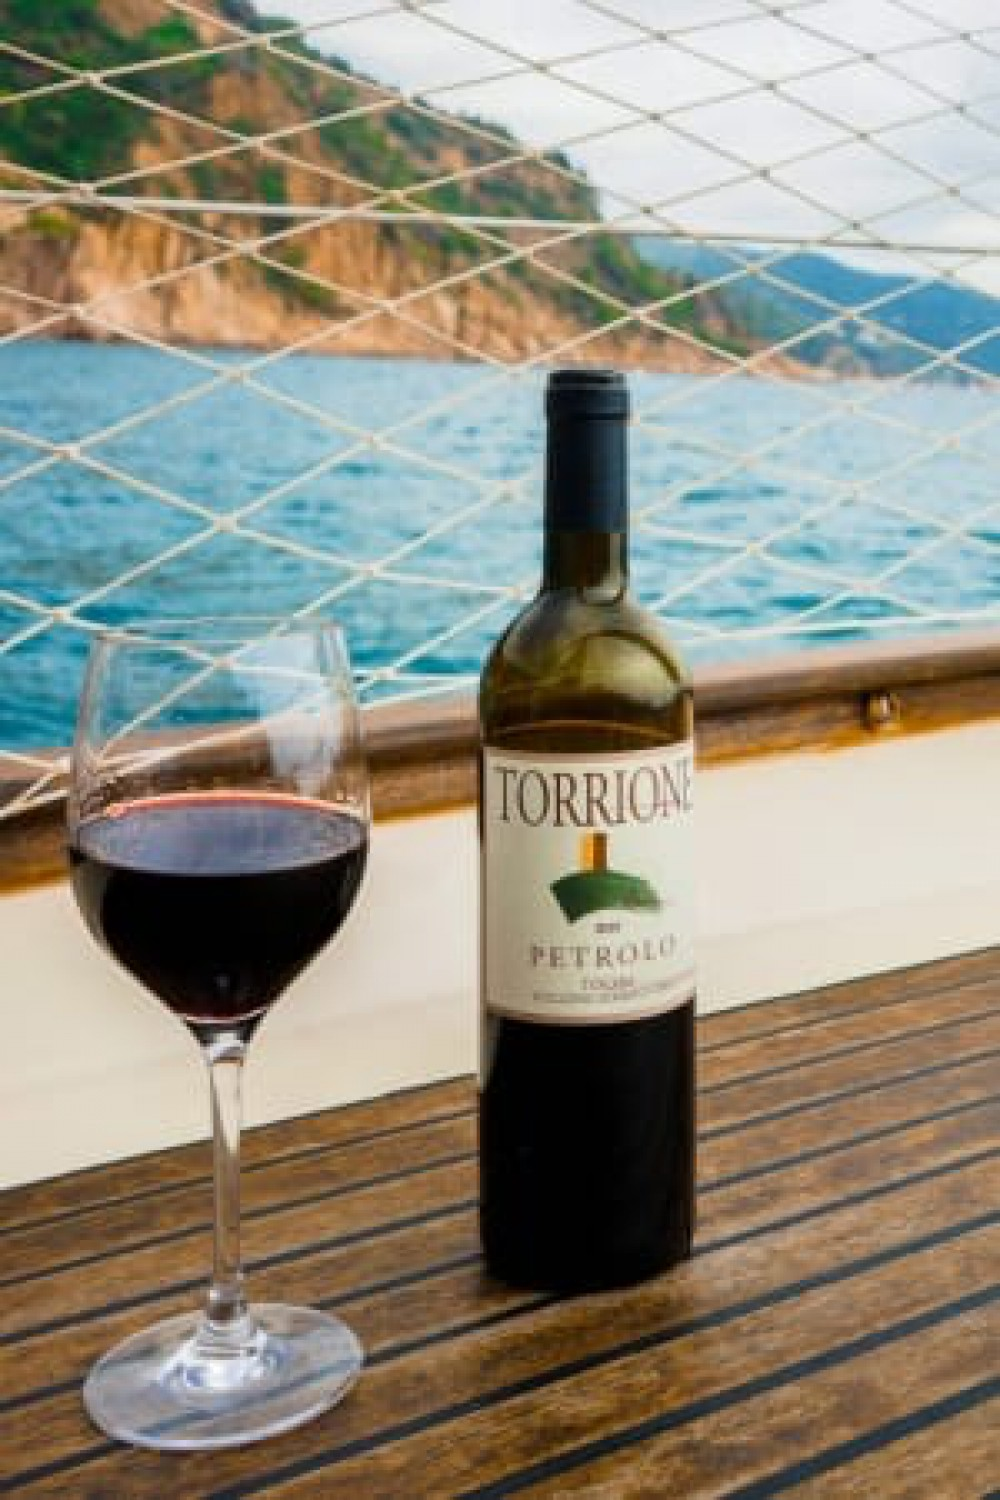 A sailing day with a bottle of Petrolo